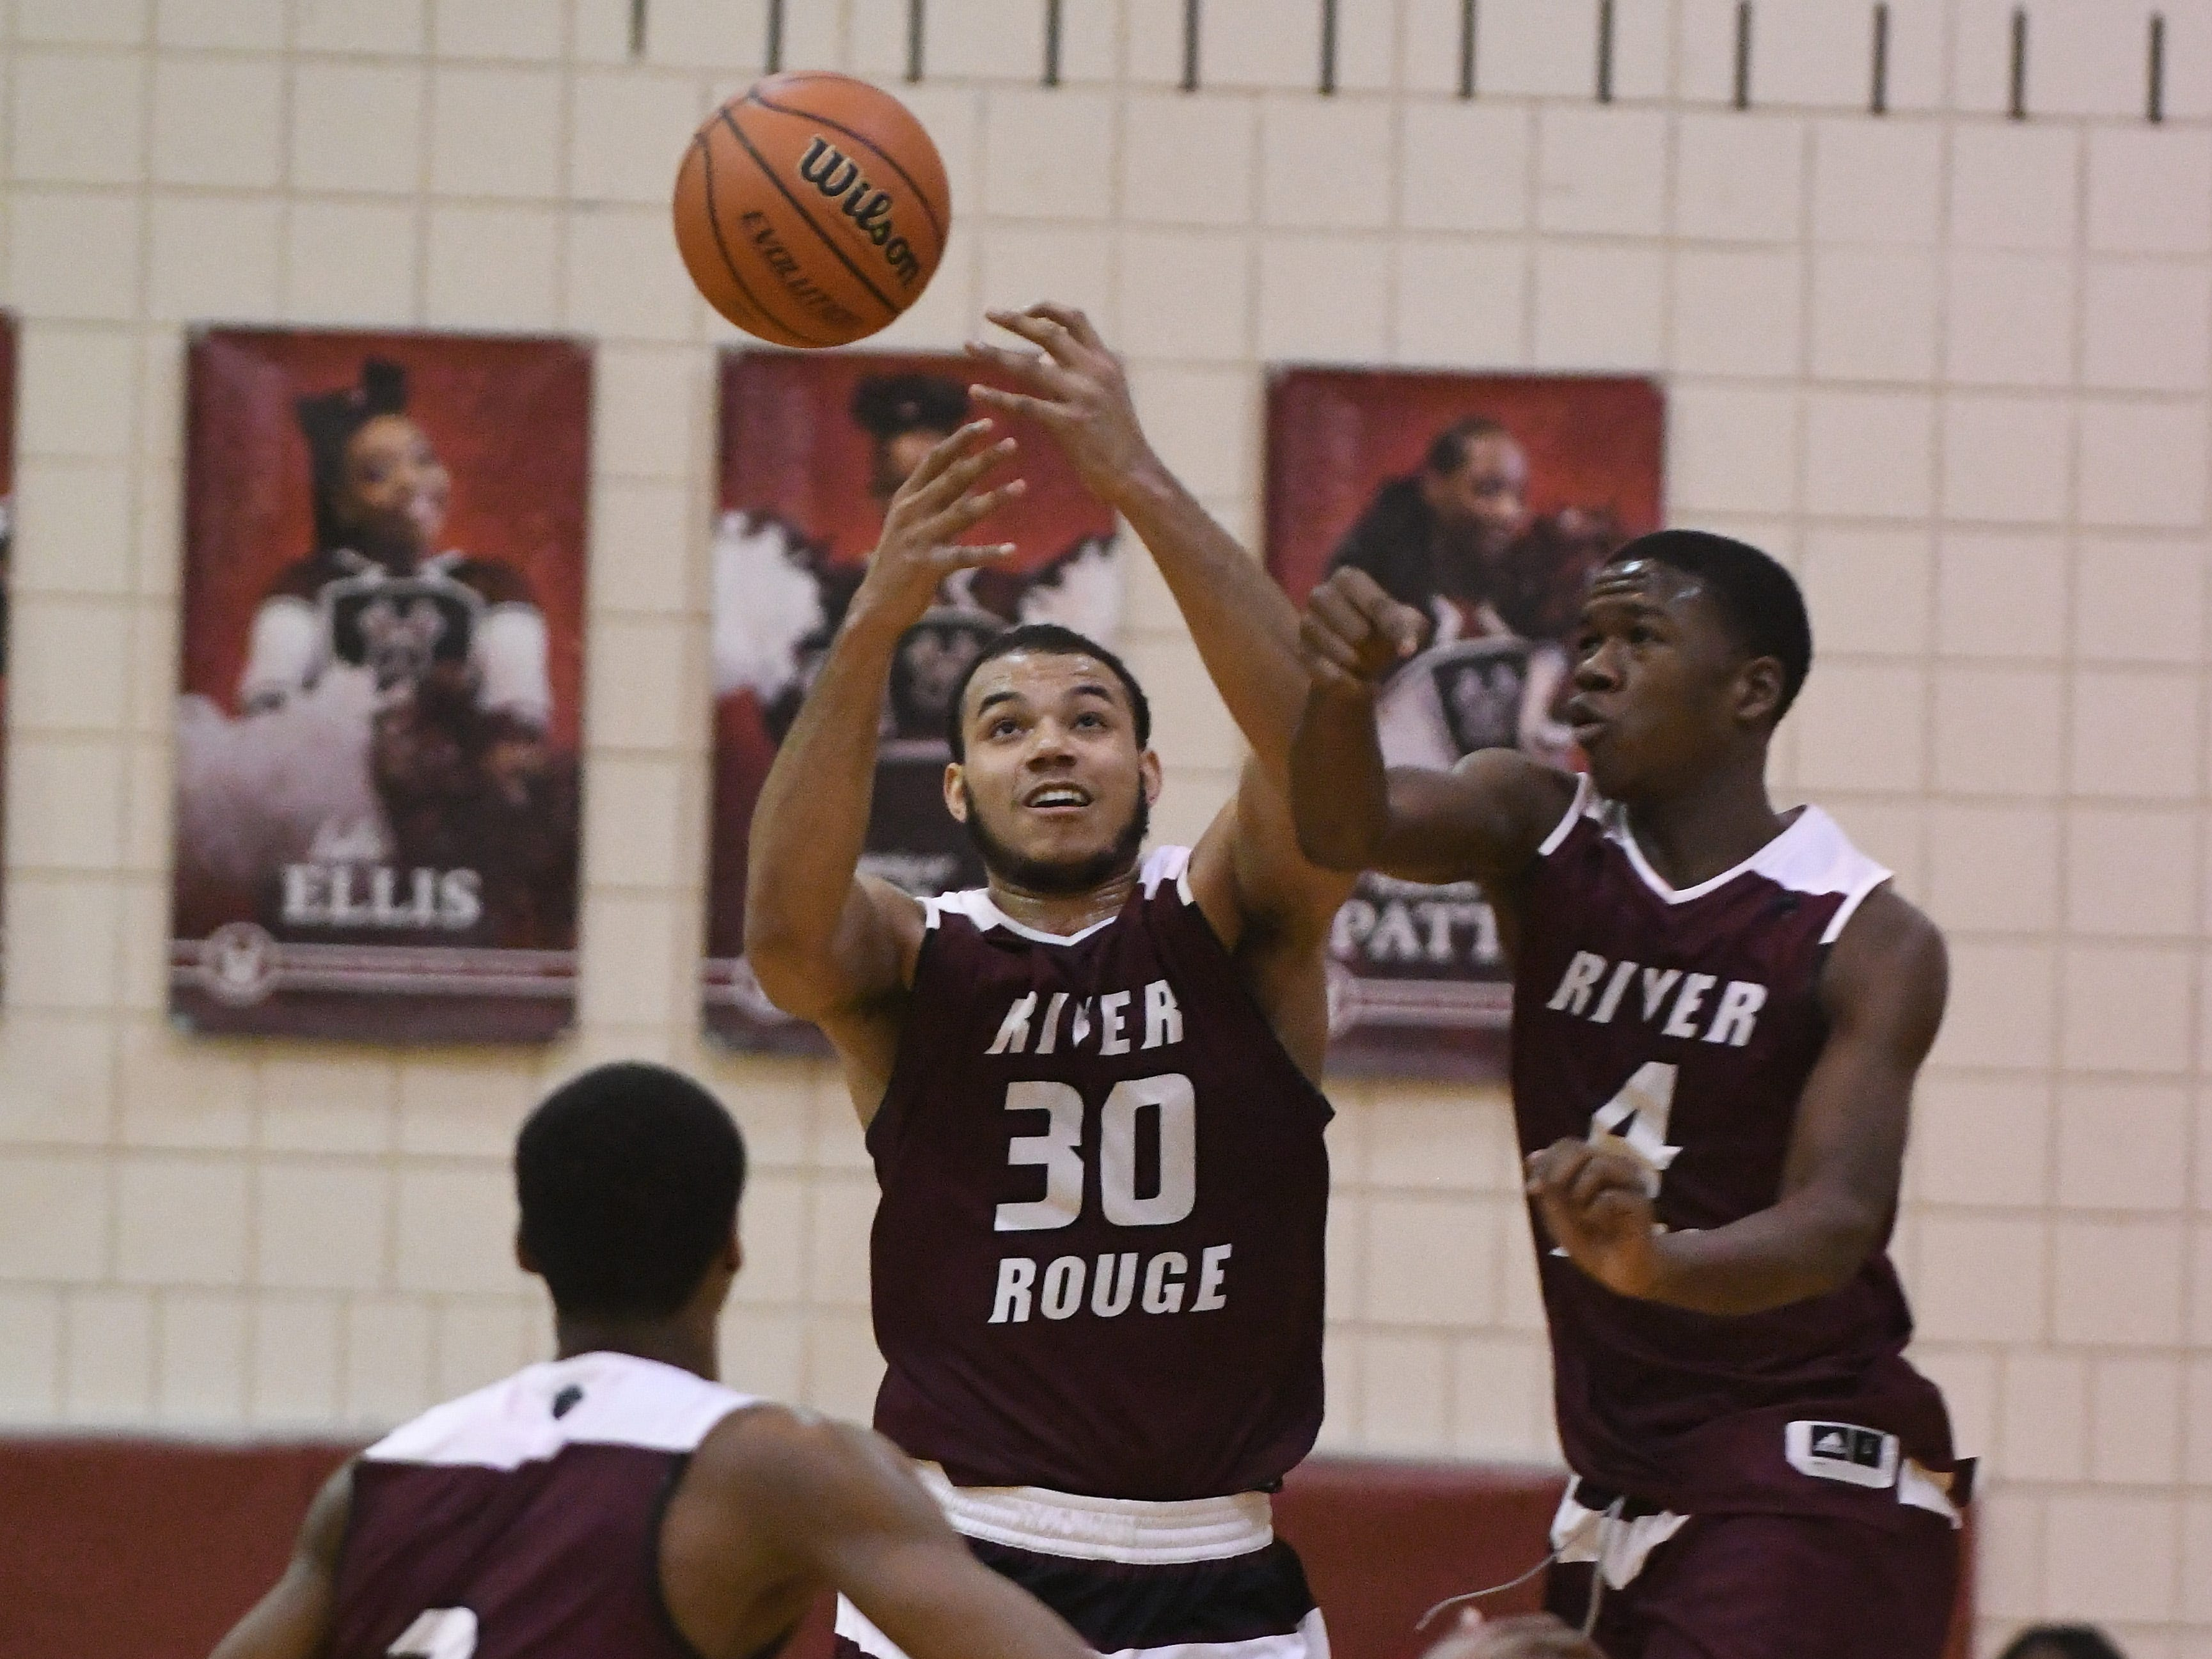 River Rouge's Micah Parrish, Dan Few and Legend Geeter chase down a loose ball in the second half.